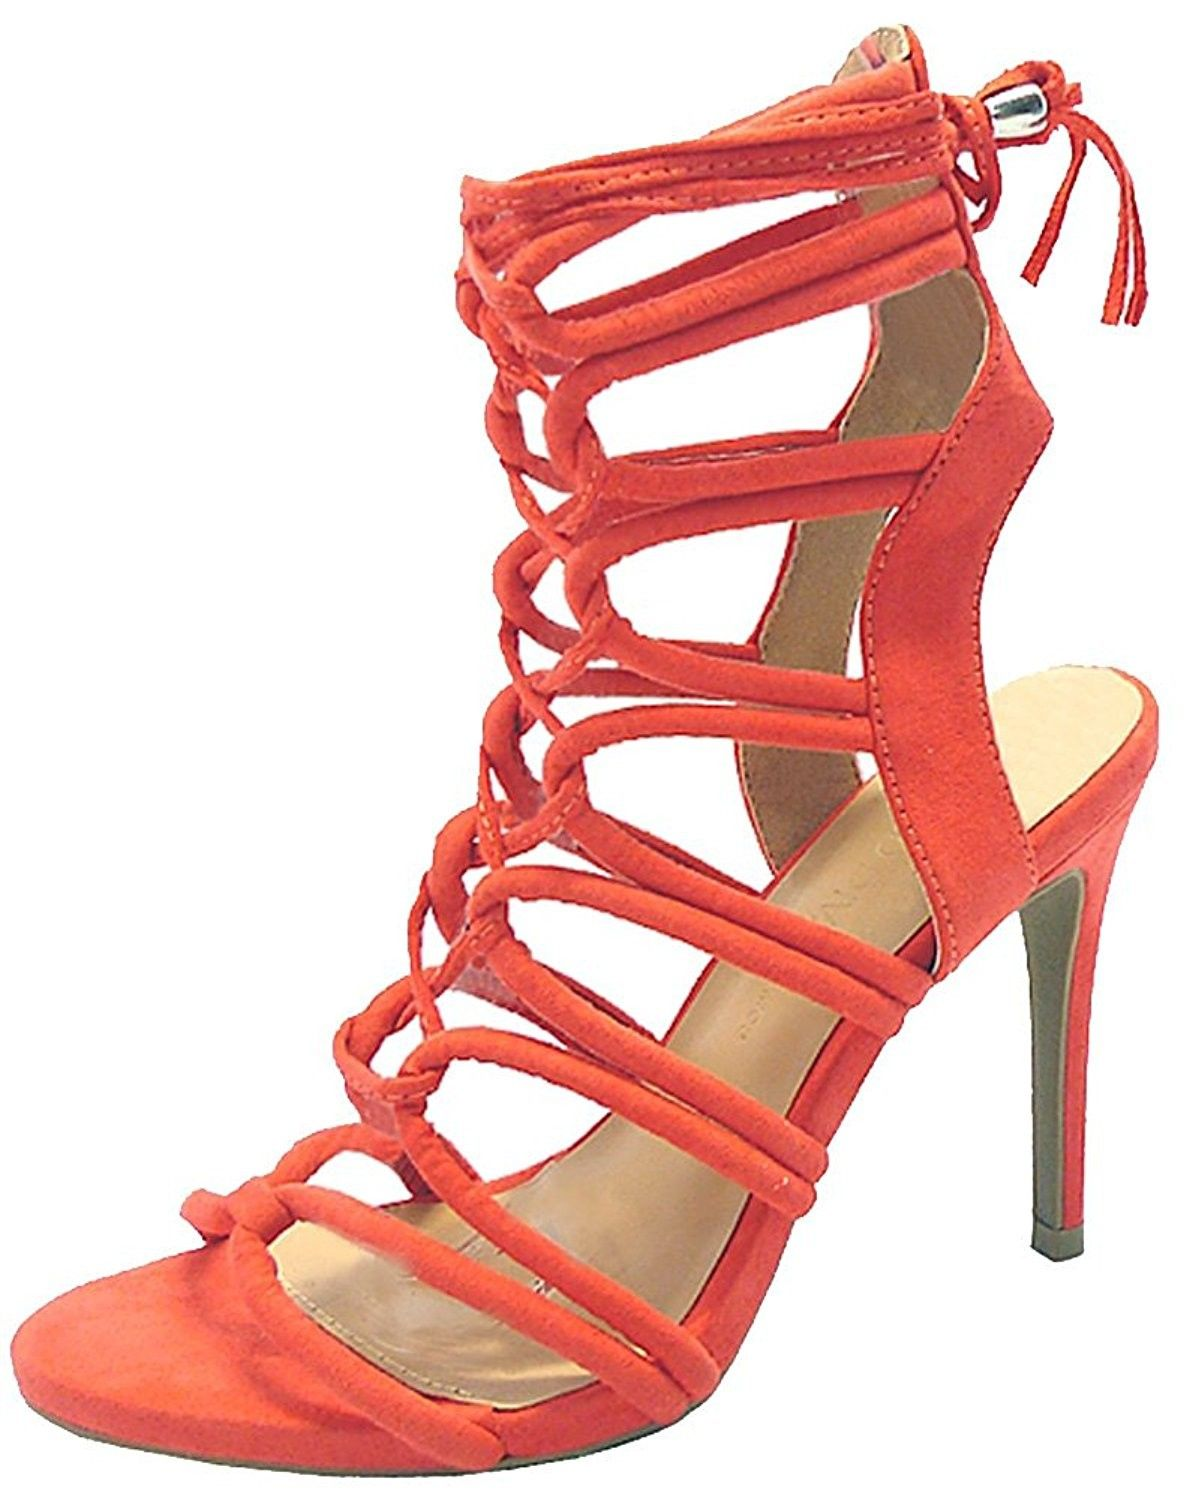 788f2744cd984 Women's Shoes, Sandals, Heeled Sandals, Women's Savvy 09 Gladiator Strappy  Lace Up Tie High Heel - Hot Coral - CI12NYTQDRR #WomensShoes #Sandals  #fashion ...